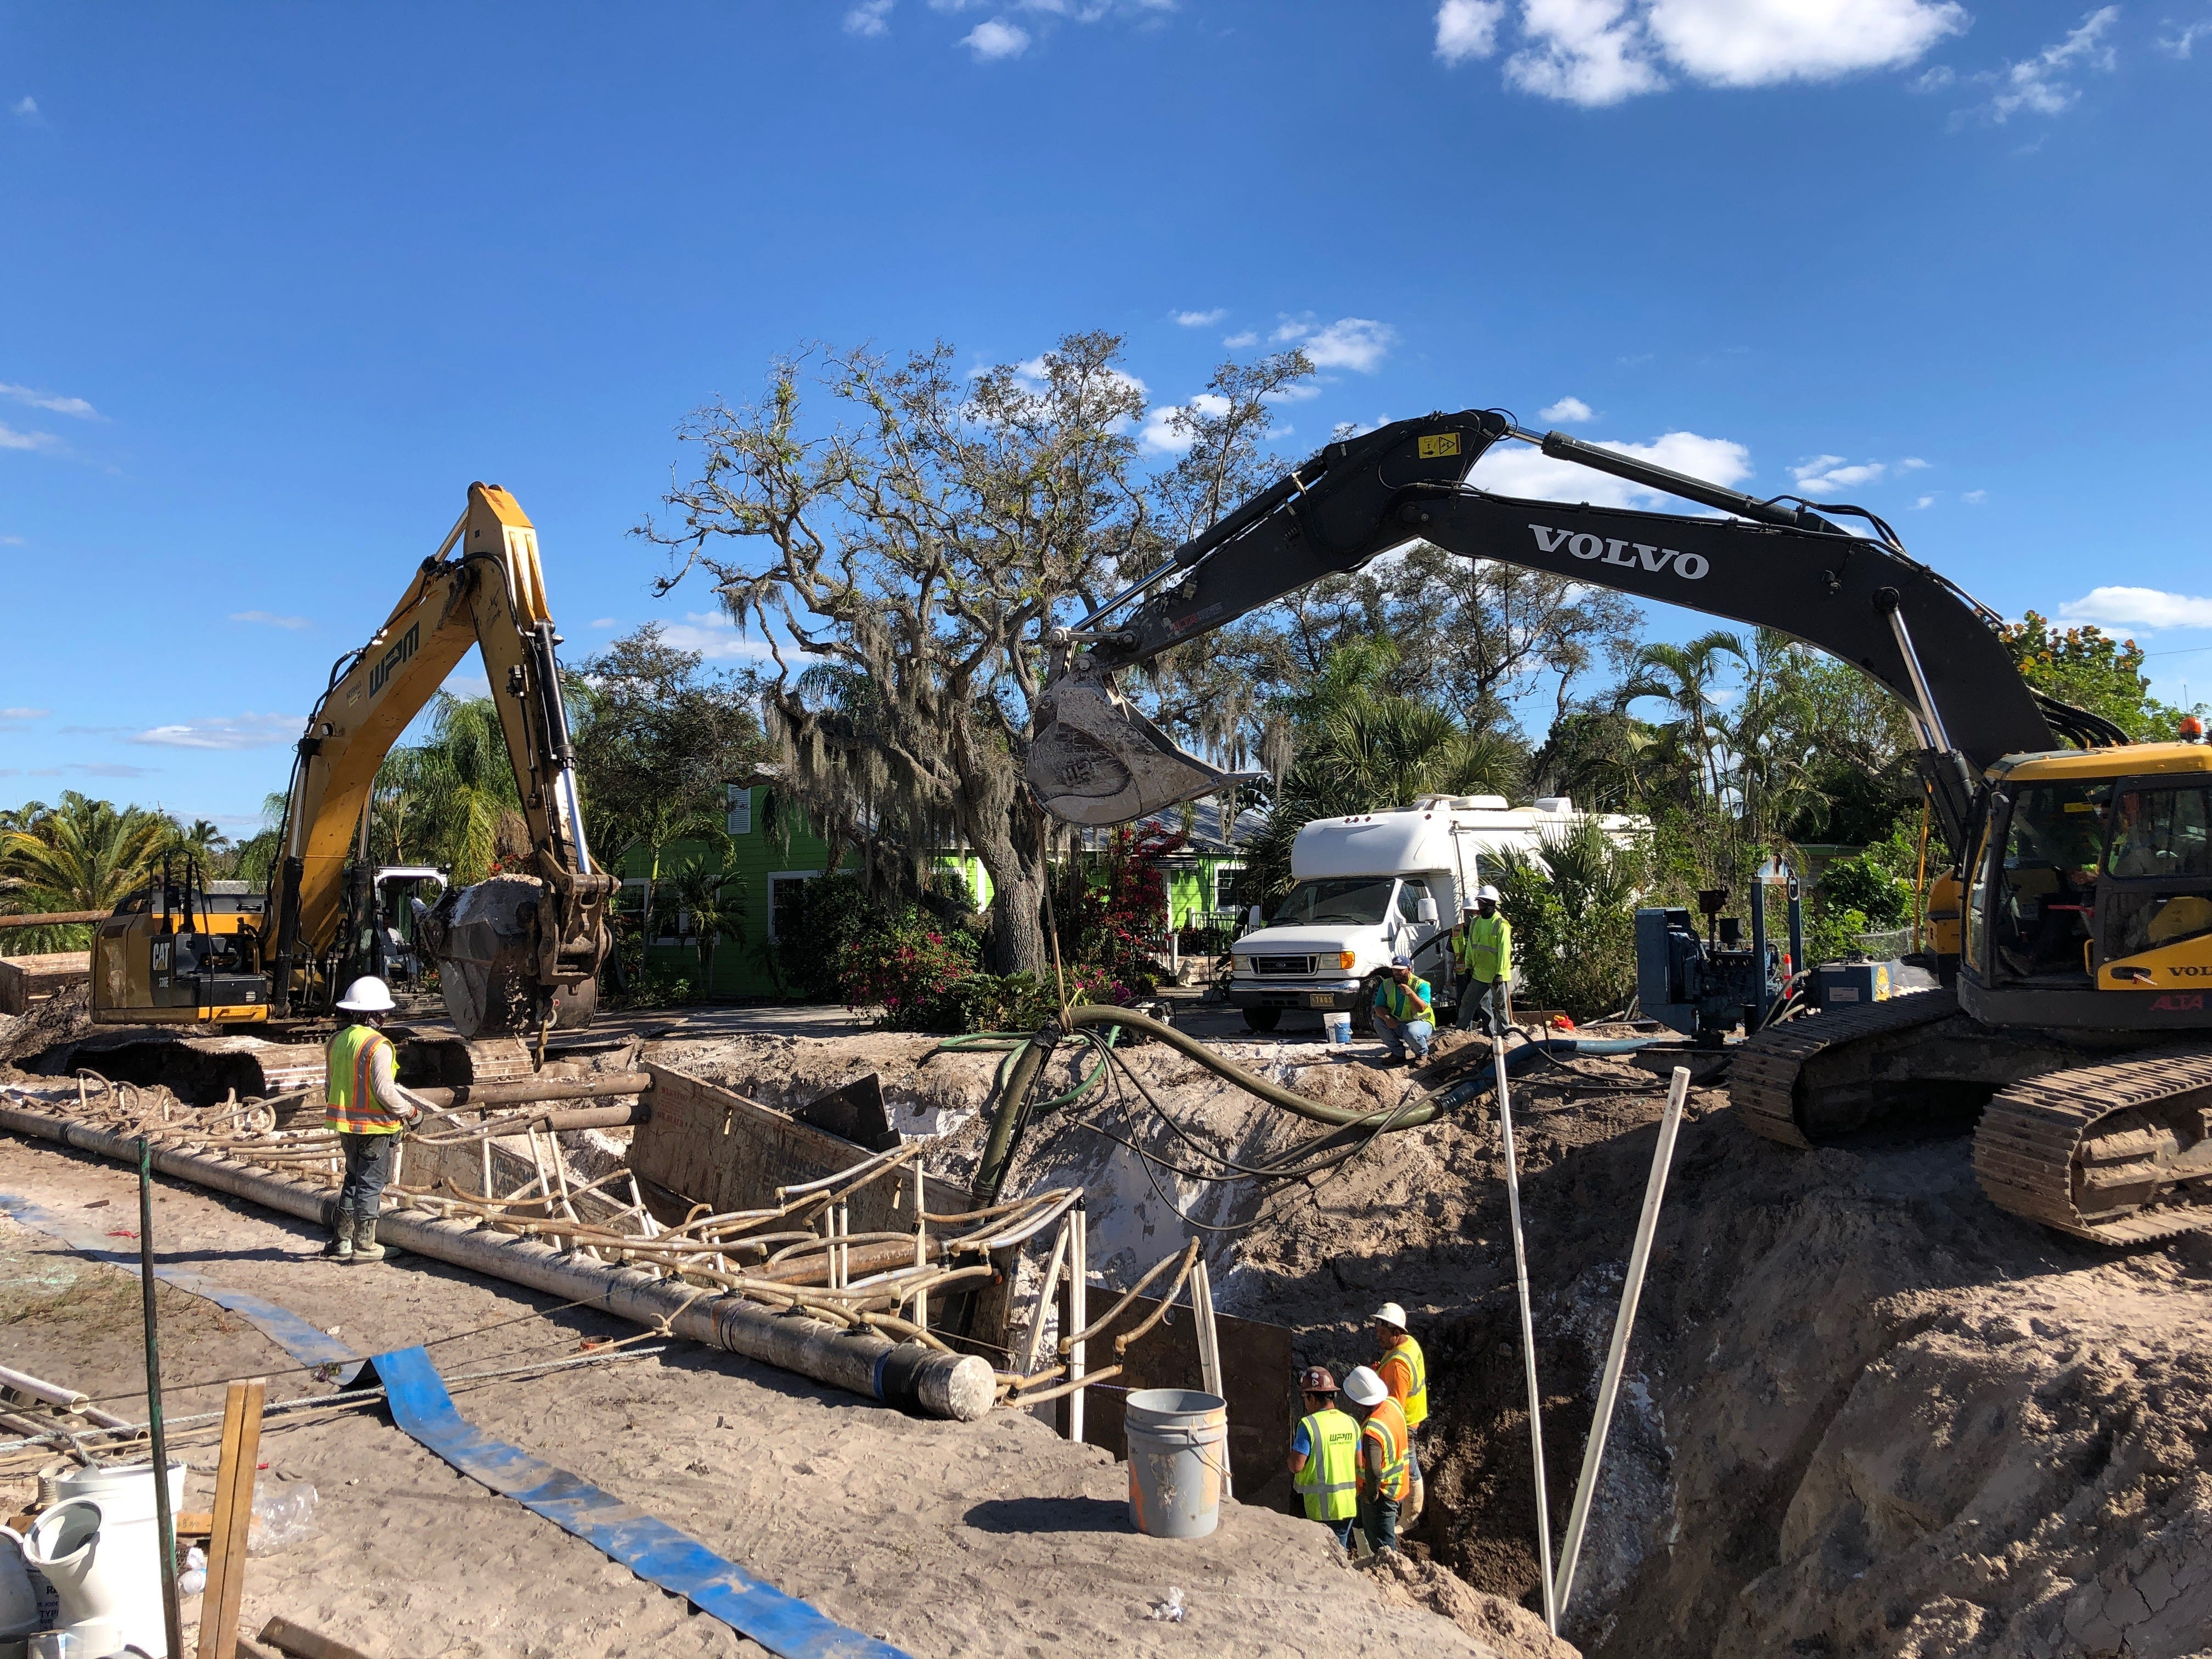 A construction crew works on installing a sanitary sewer system on Ridge Street in Naples earlier this year. The Naples City Council voted in October to convert all homes in the city's utilities service district from septic tanks to city sewer.